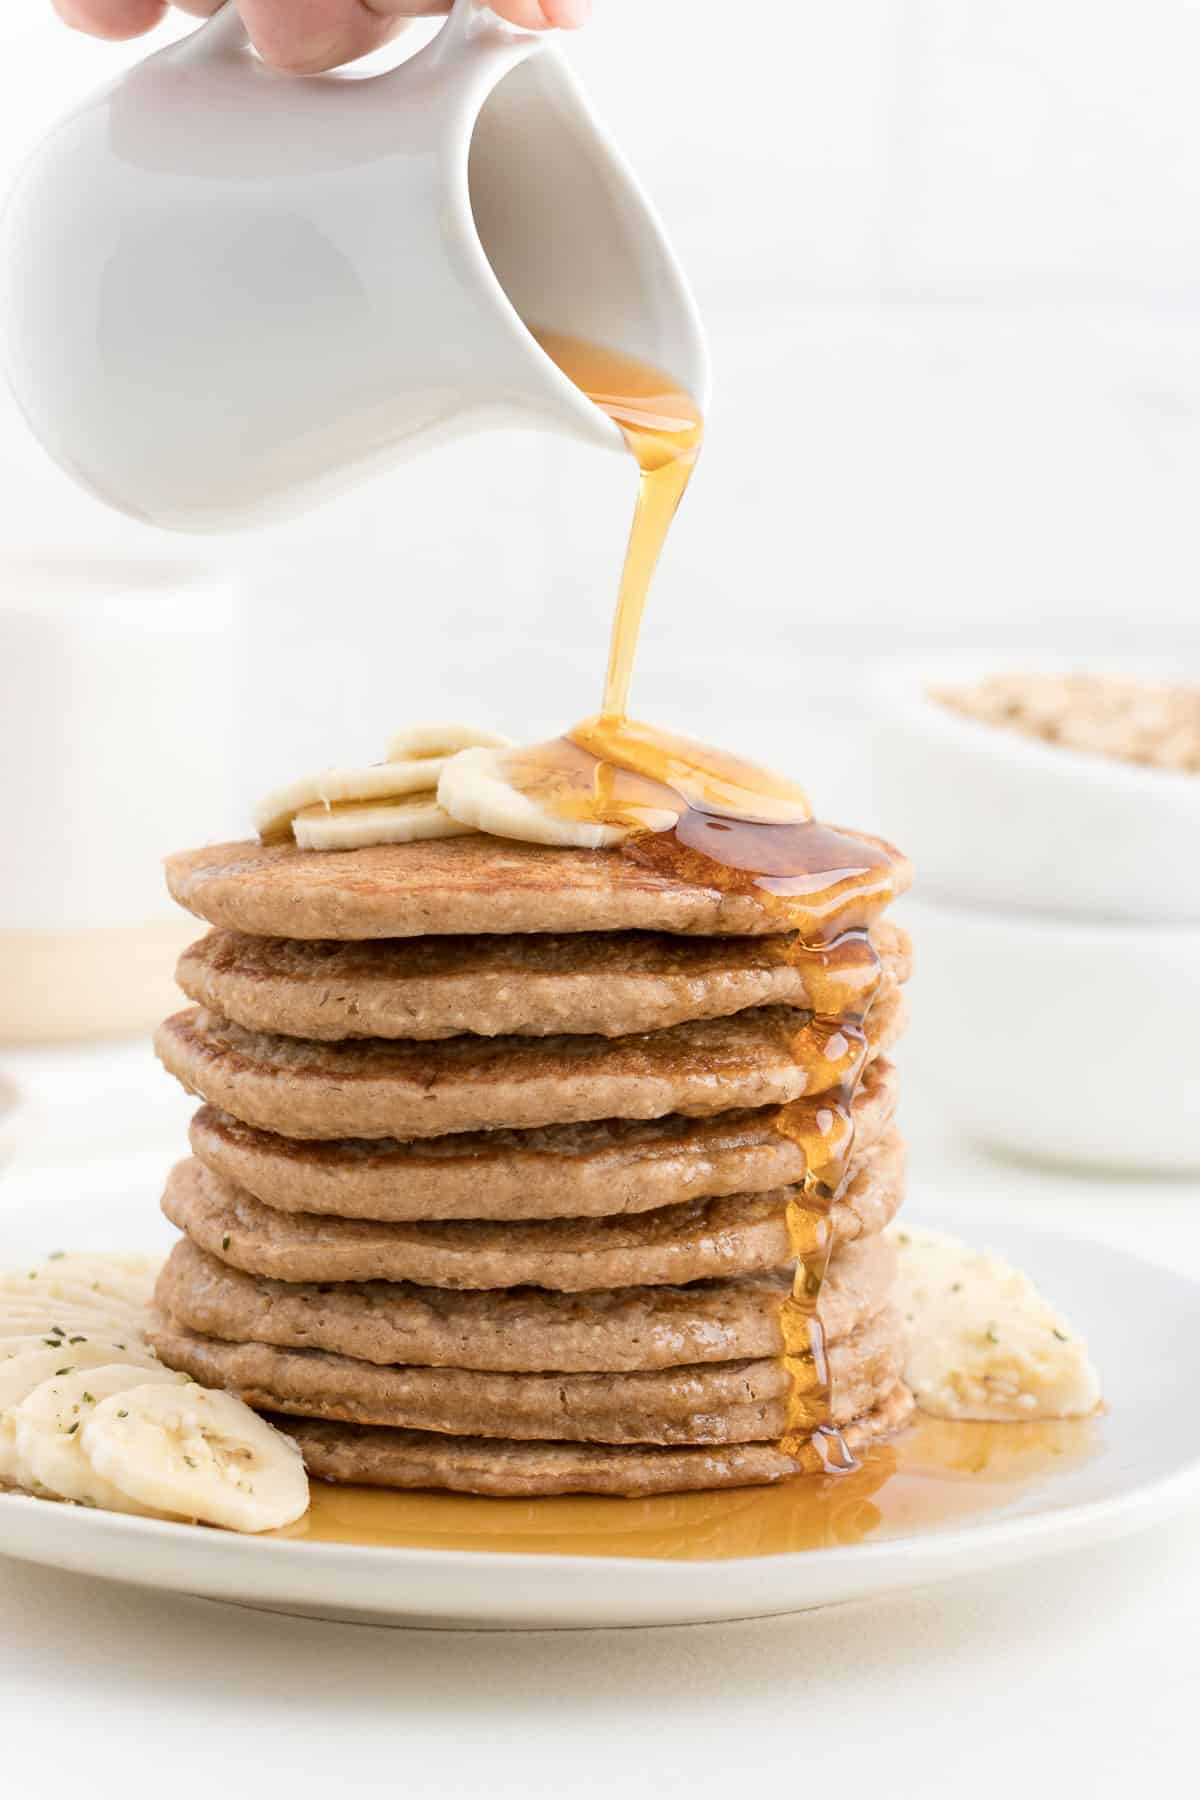 maple syrup being poured over a pancake stack topped with banana slices